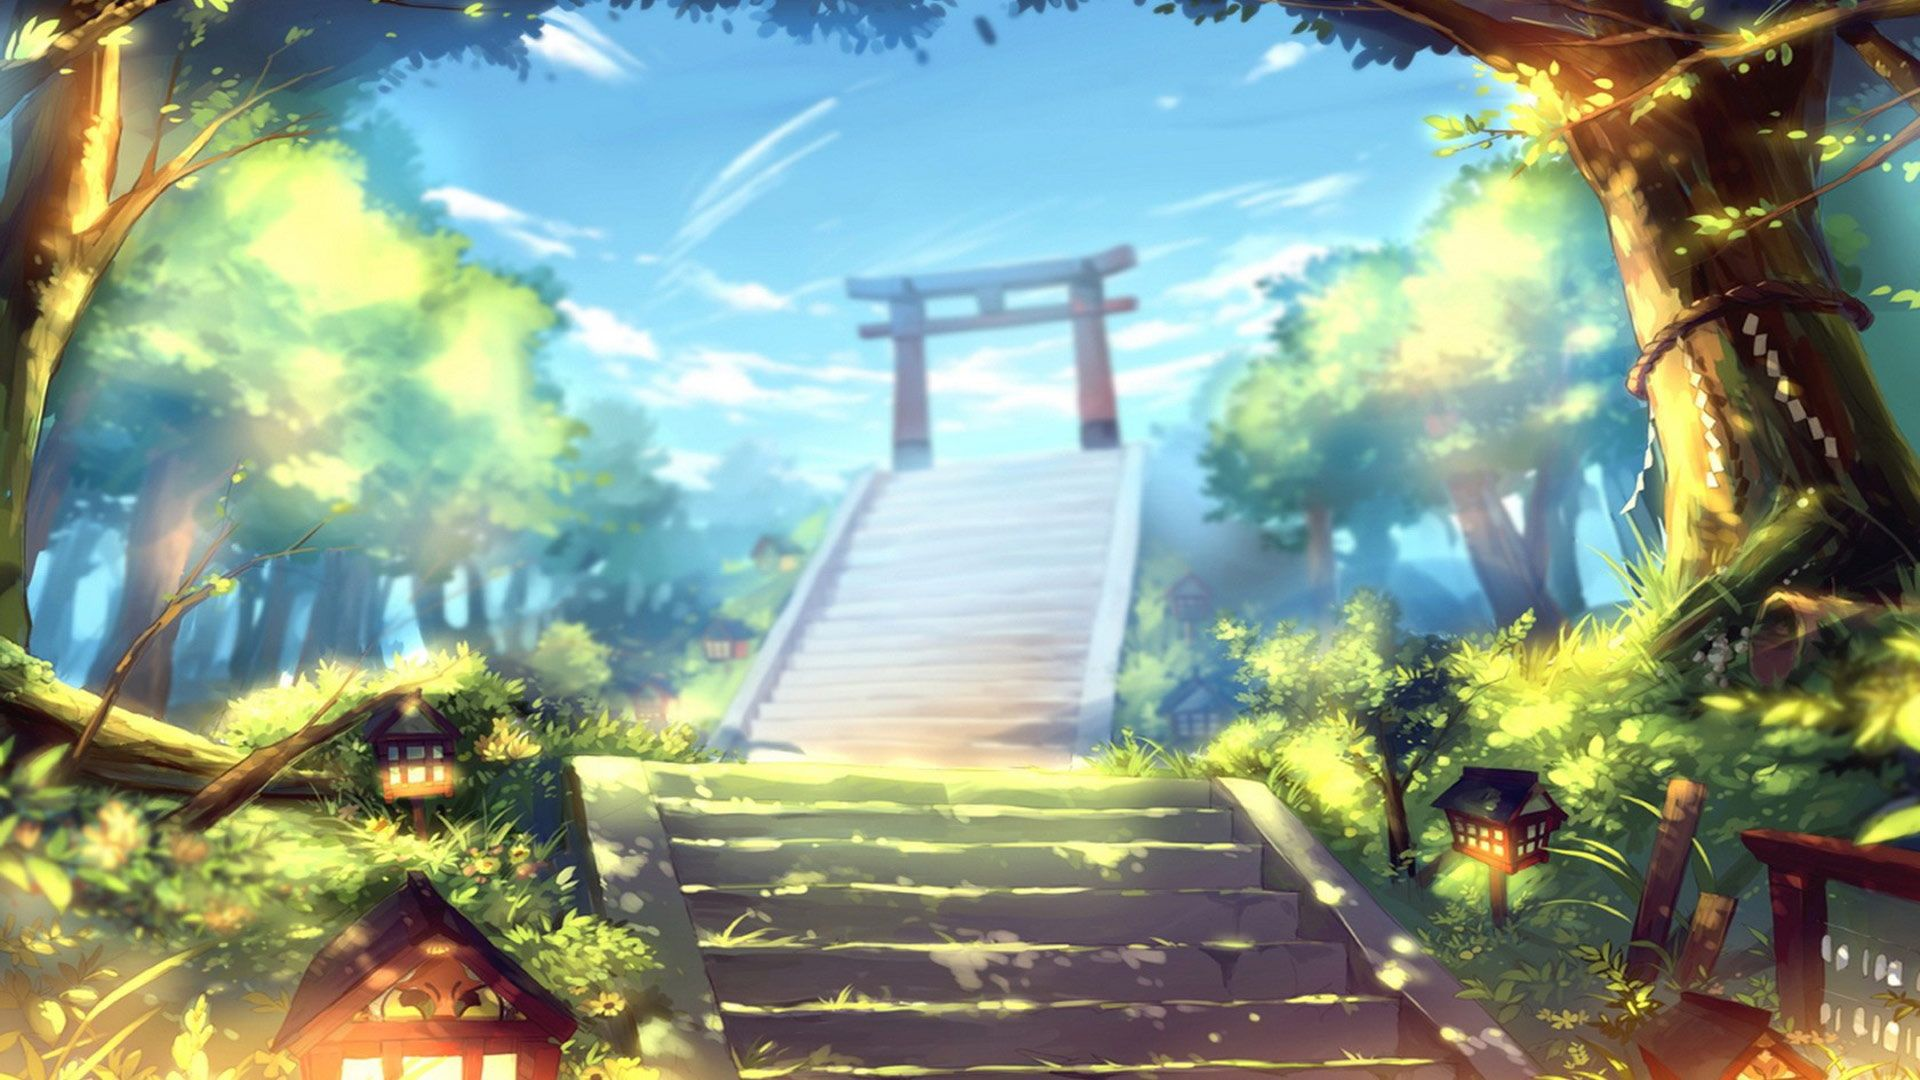 Free torii gate anime manga artwork computer desktop - Wallpaper computer anime ...